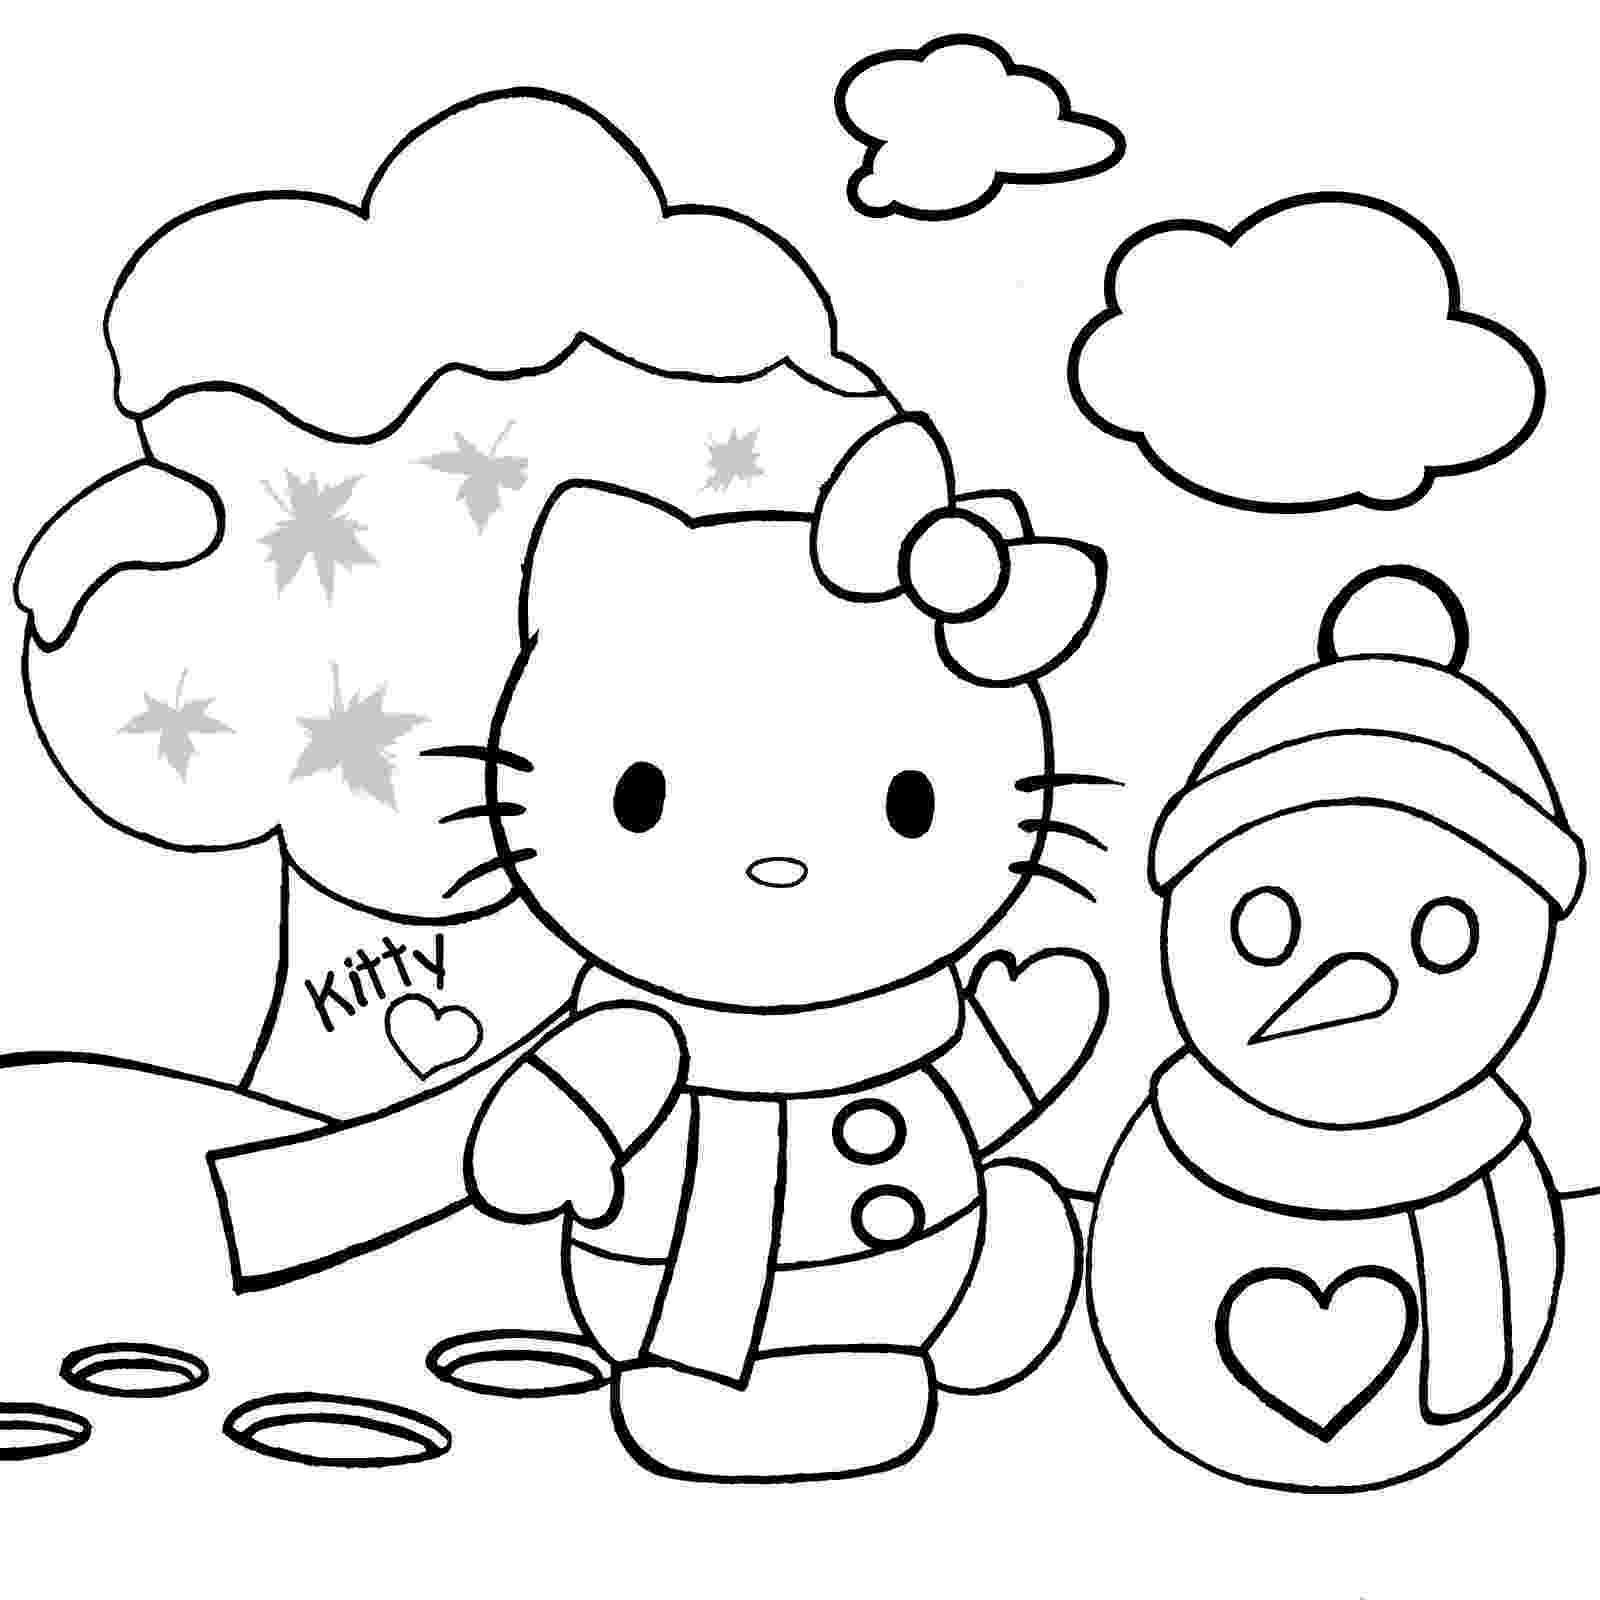 hello kitty christmas coloring pages free print hello kitty christmas coloring pages 1 hello kitty forever pages coloring hello print kitty christmas free